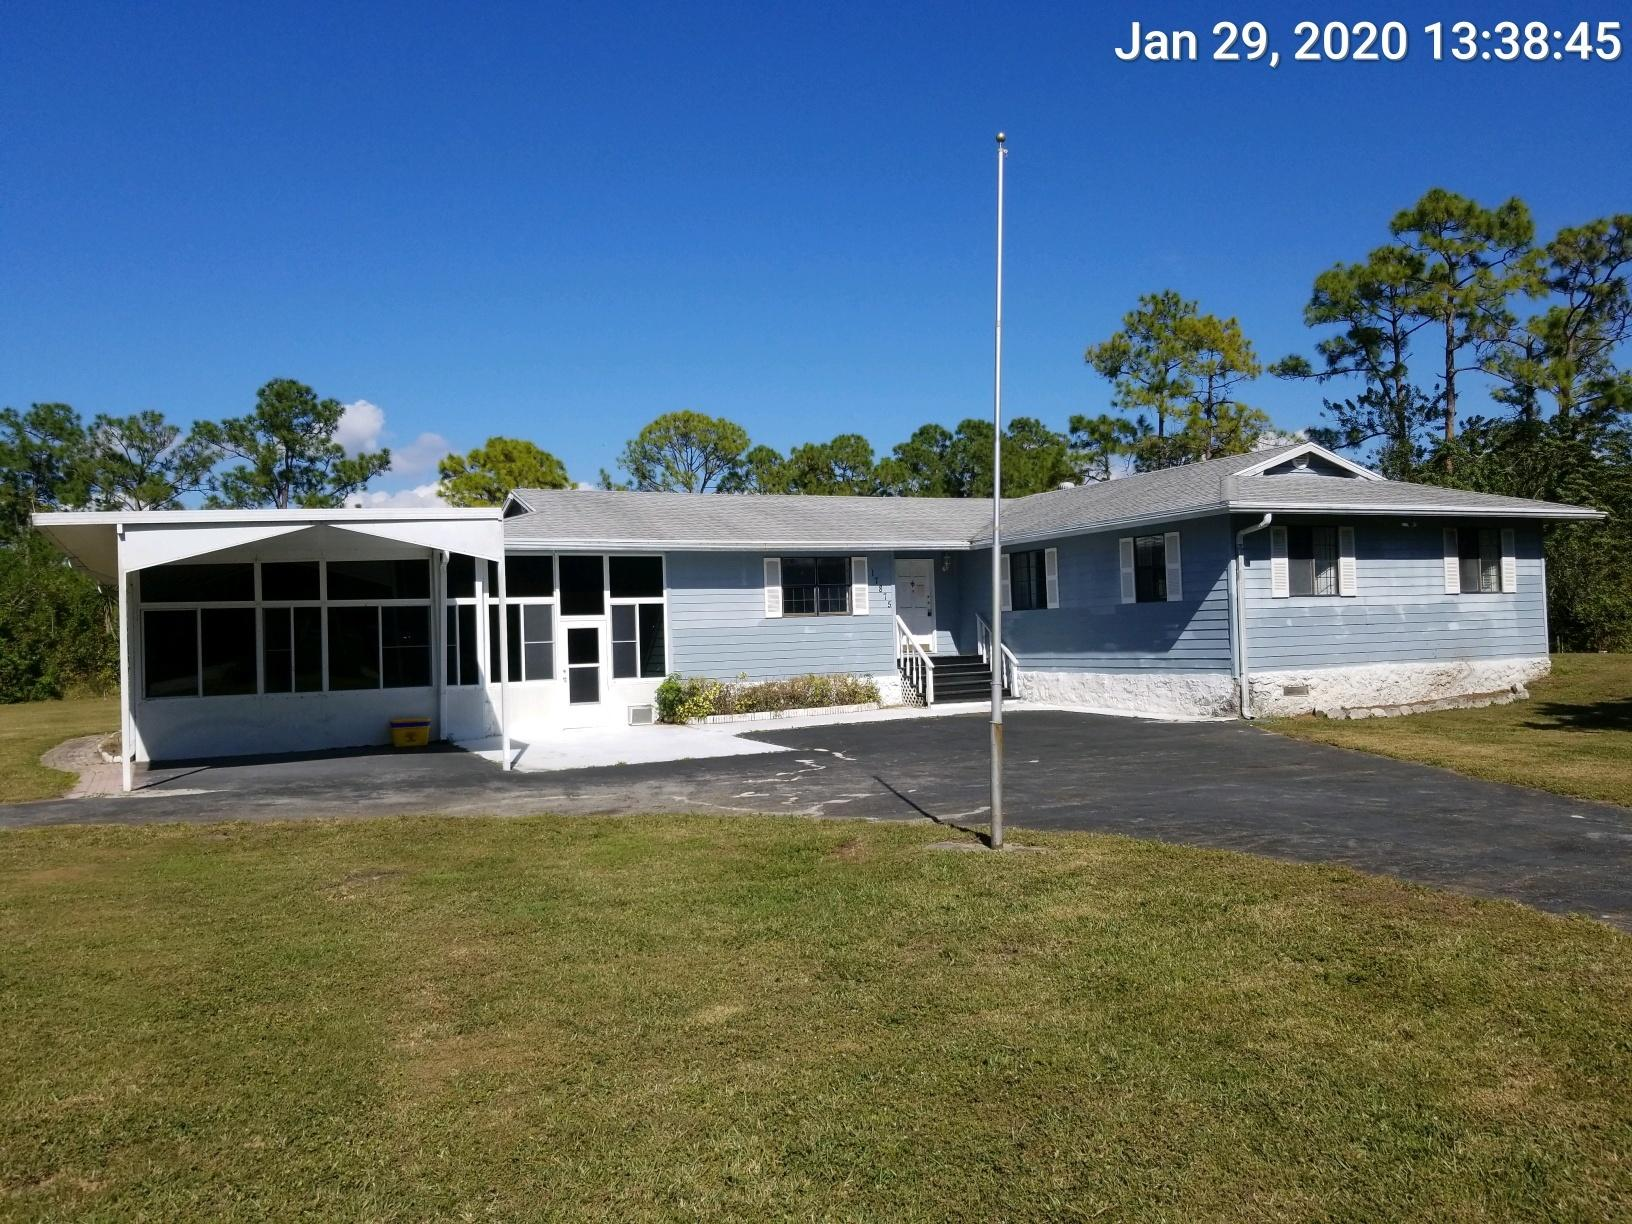 17875 42nd Road N, Loxahatchee in Palm Beach County, FL 33470 Home for Sale